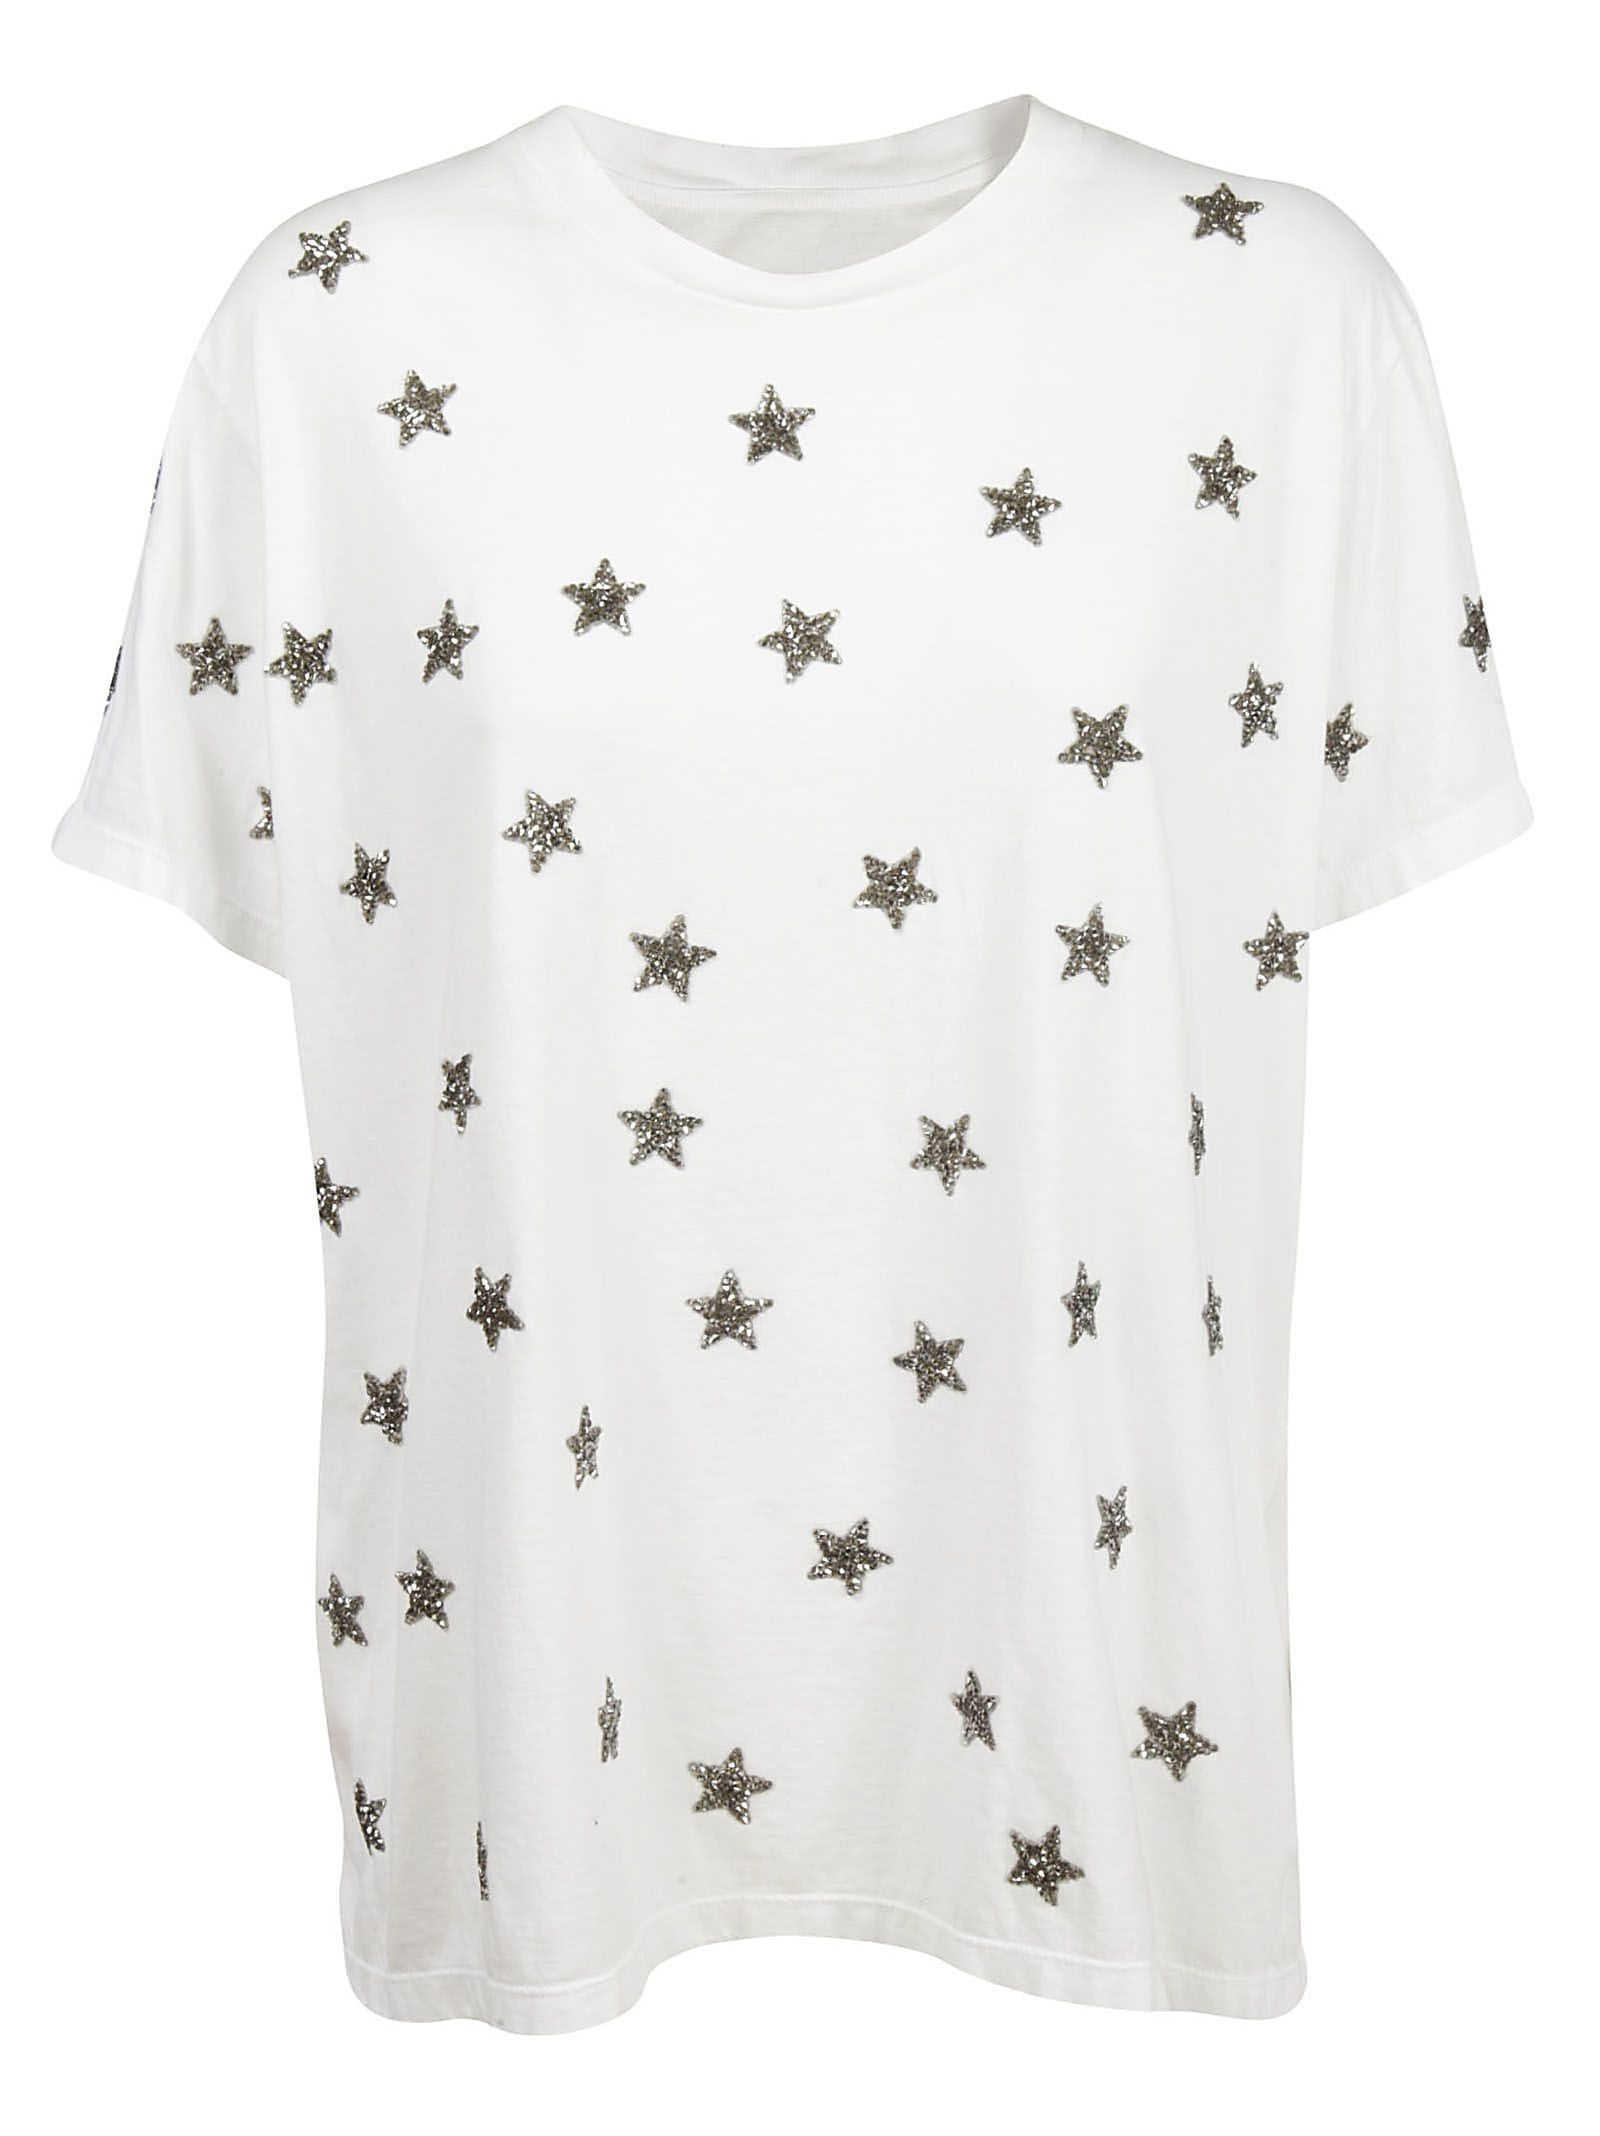 star embellished T-shirt - White AS65 Discount Visit New h6vwAg